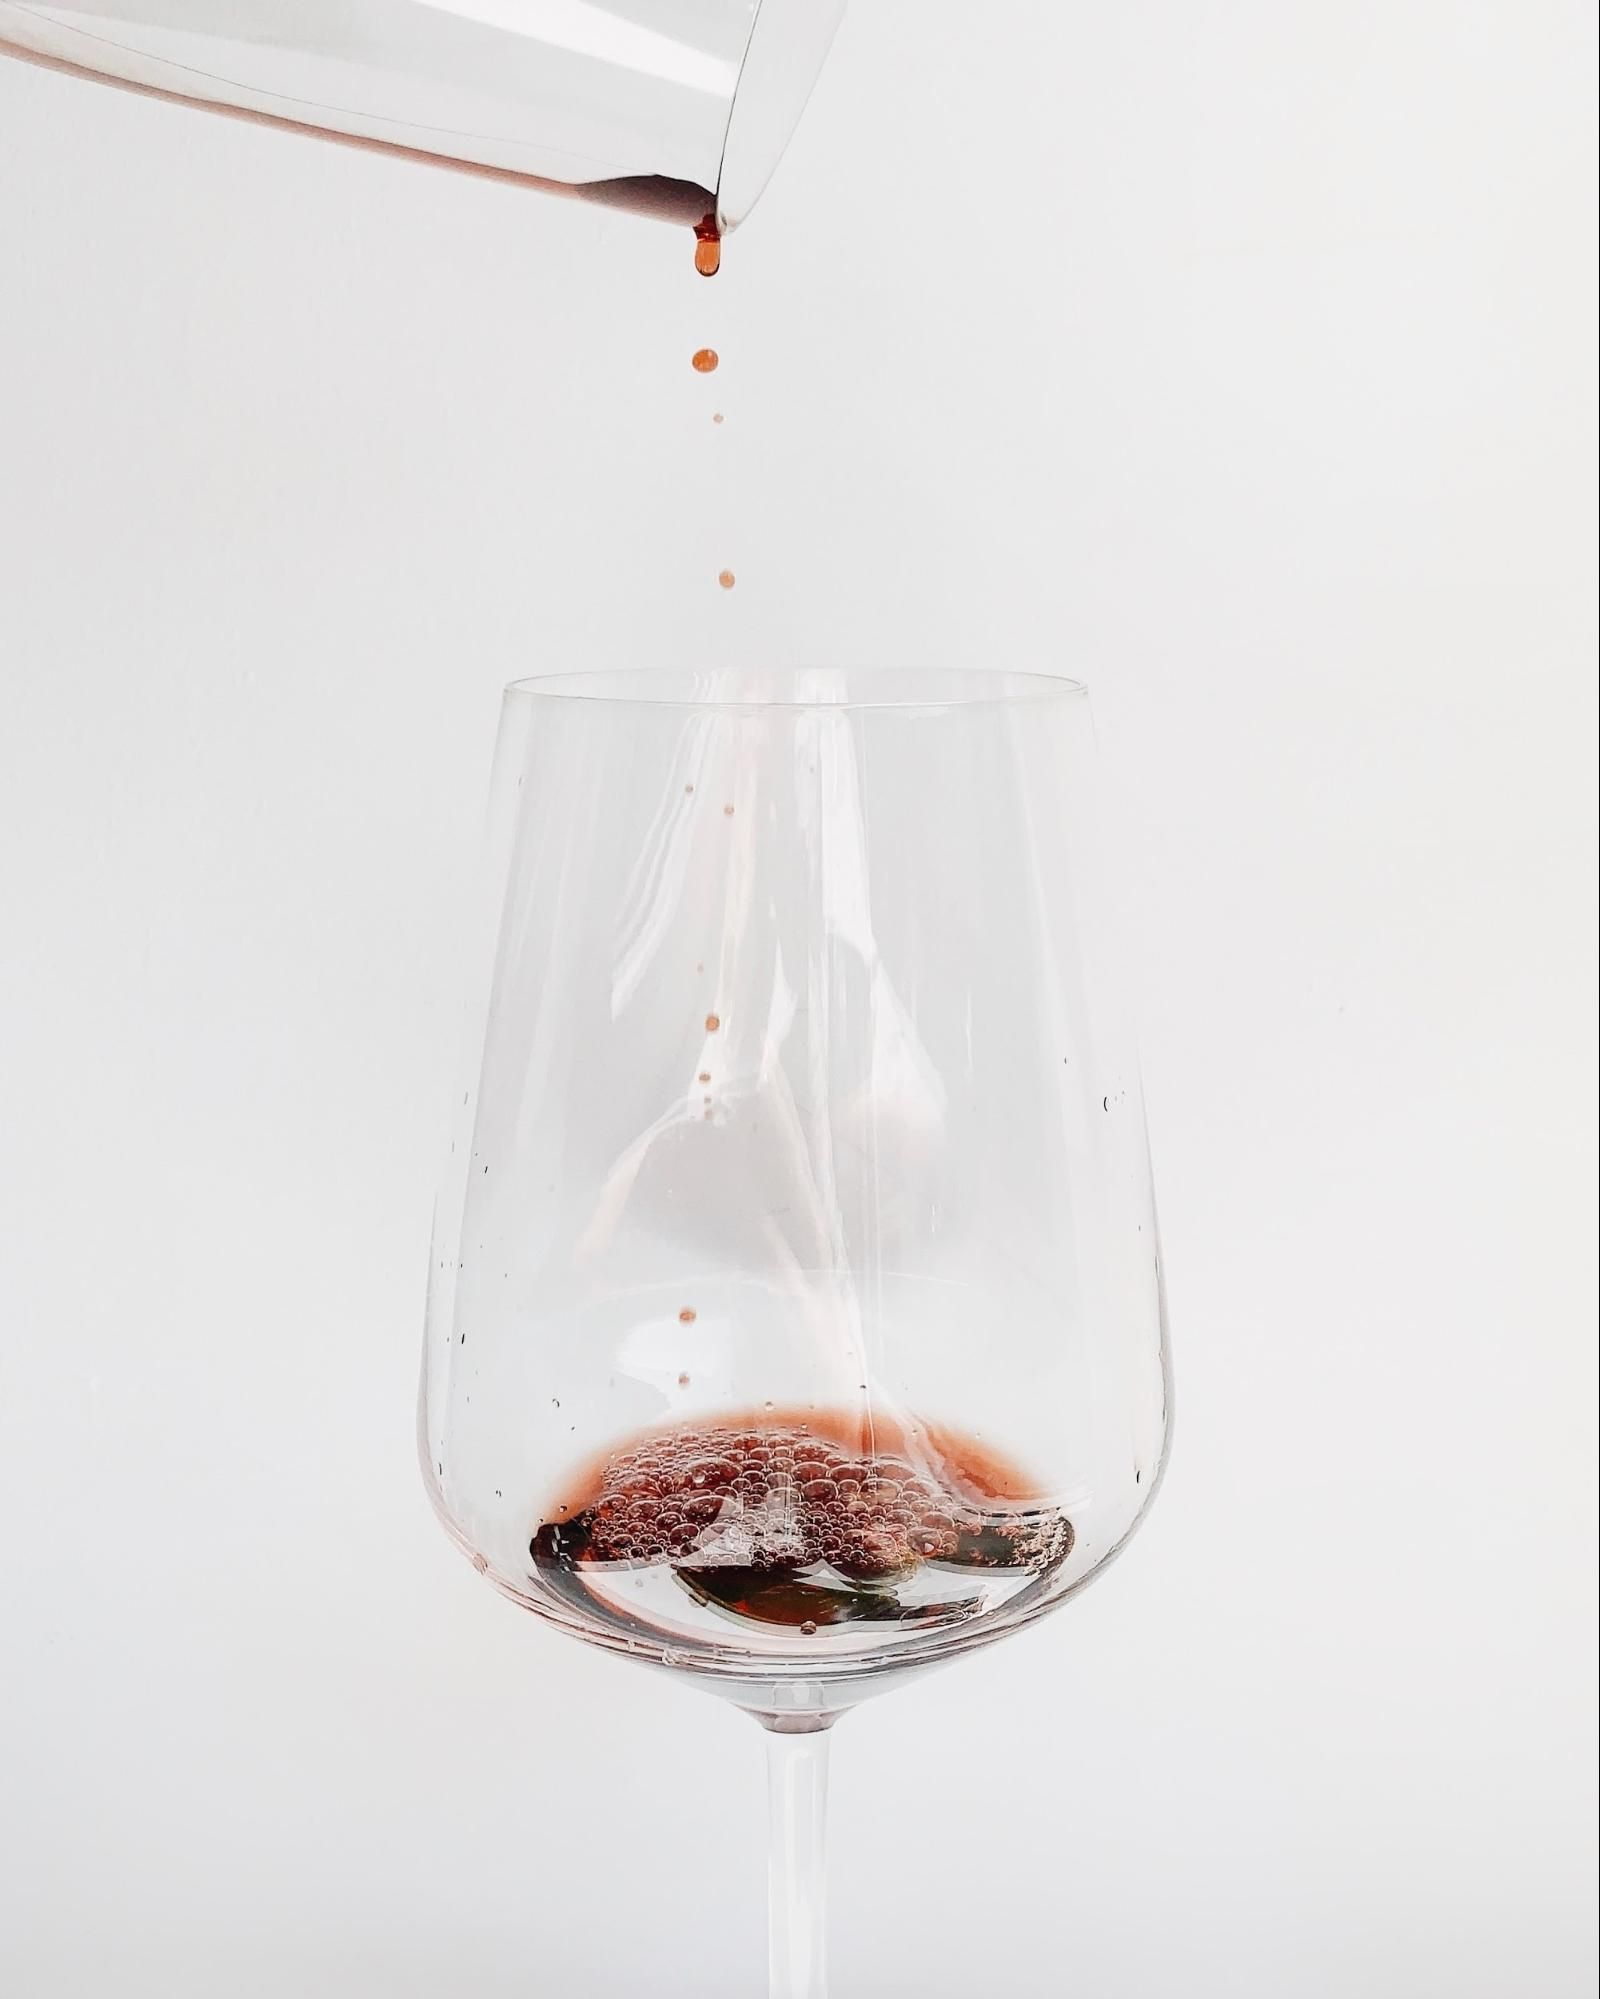 Red wine being poured into a wine glass; WSET 3